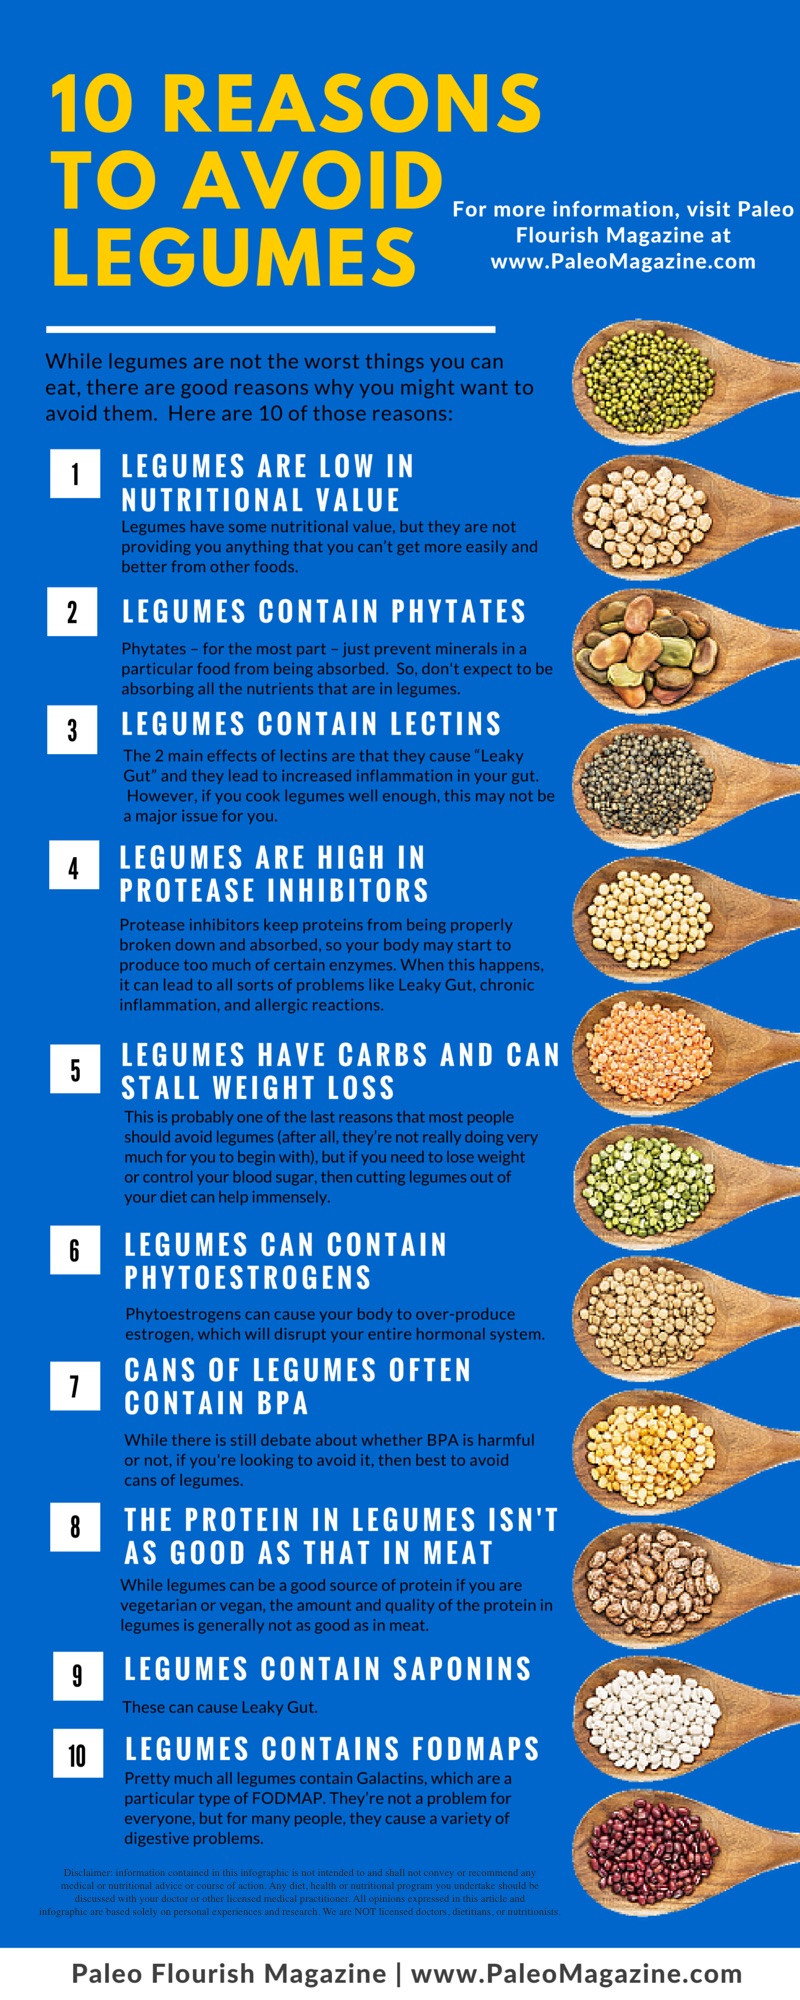 Why Paleo Diet is Unhealthy the 20 Best Ideas for 10 Reasons to Avoid Eating Legumes [ Infographic]